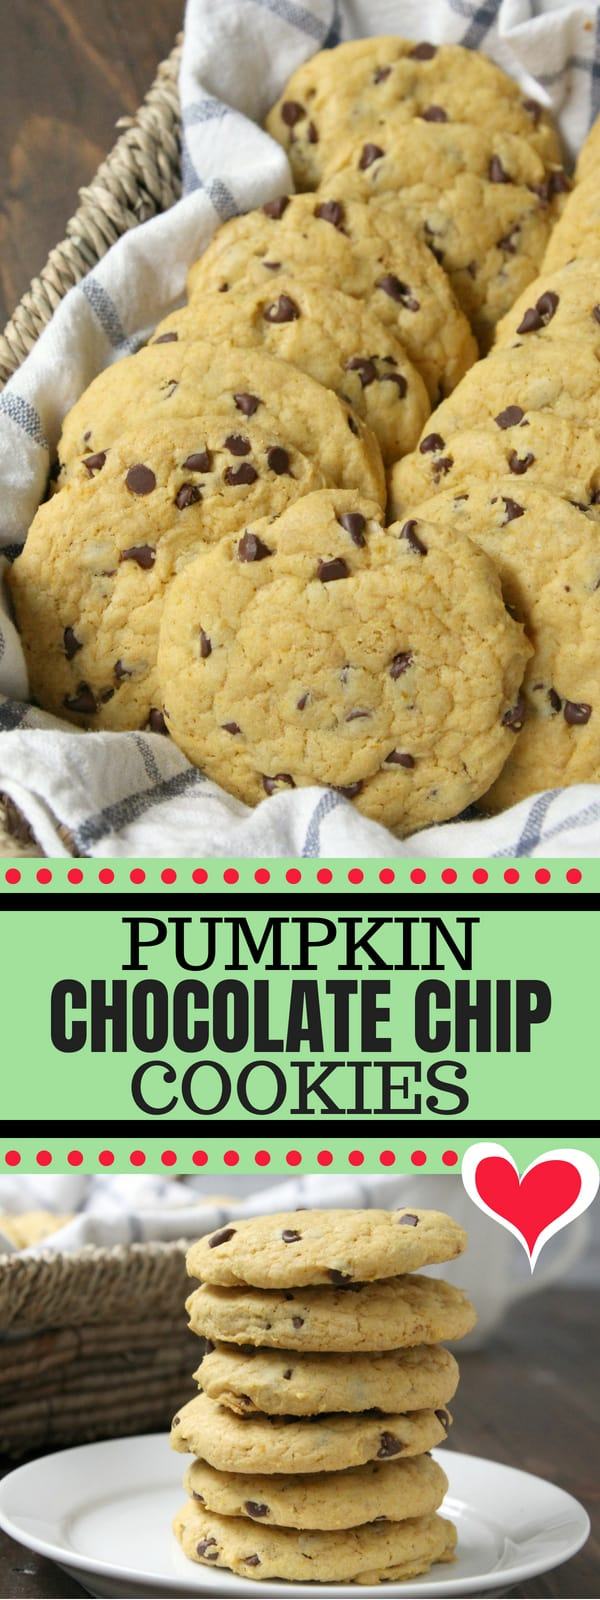 Pumpkin Chocolate Chip Cookies - easy from scratch pumpkin cookie recipe with chocolate chips. These cookies are soft and chewy and perfect for fall! #Pumpkin #Cookie #ChocolateChip #SnappyGourmet #Recipe #Cookies #PumpkinSpice #Fall #Baking #Dessert #PumpkinChocolateChip